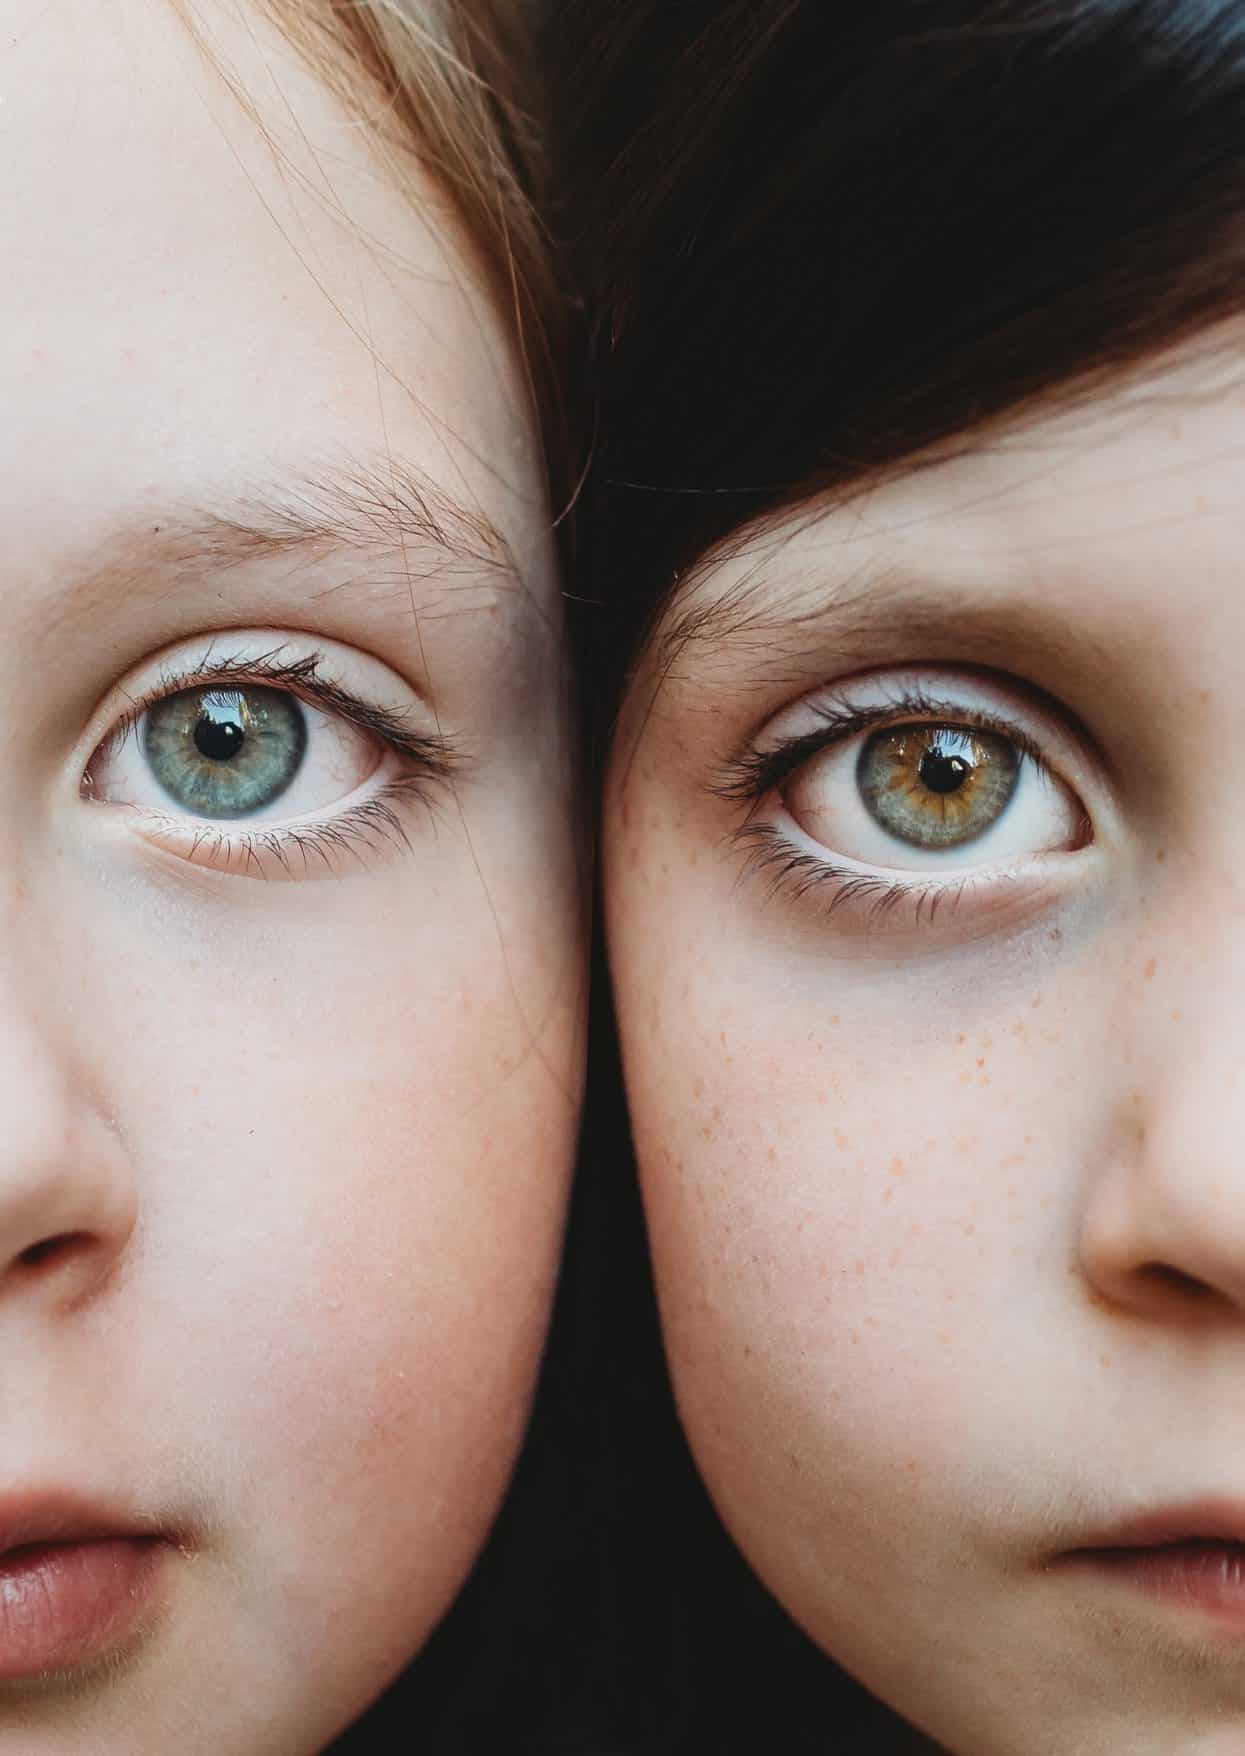 A close up of two sisters close to each other with their faces